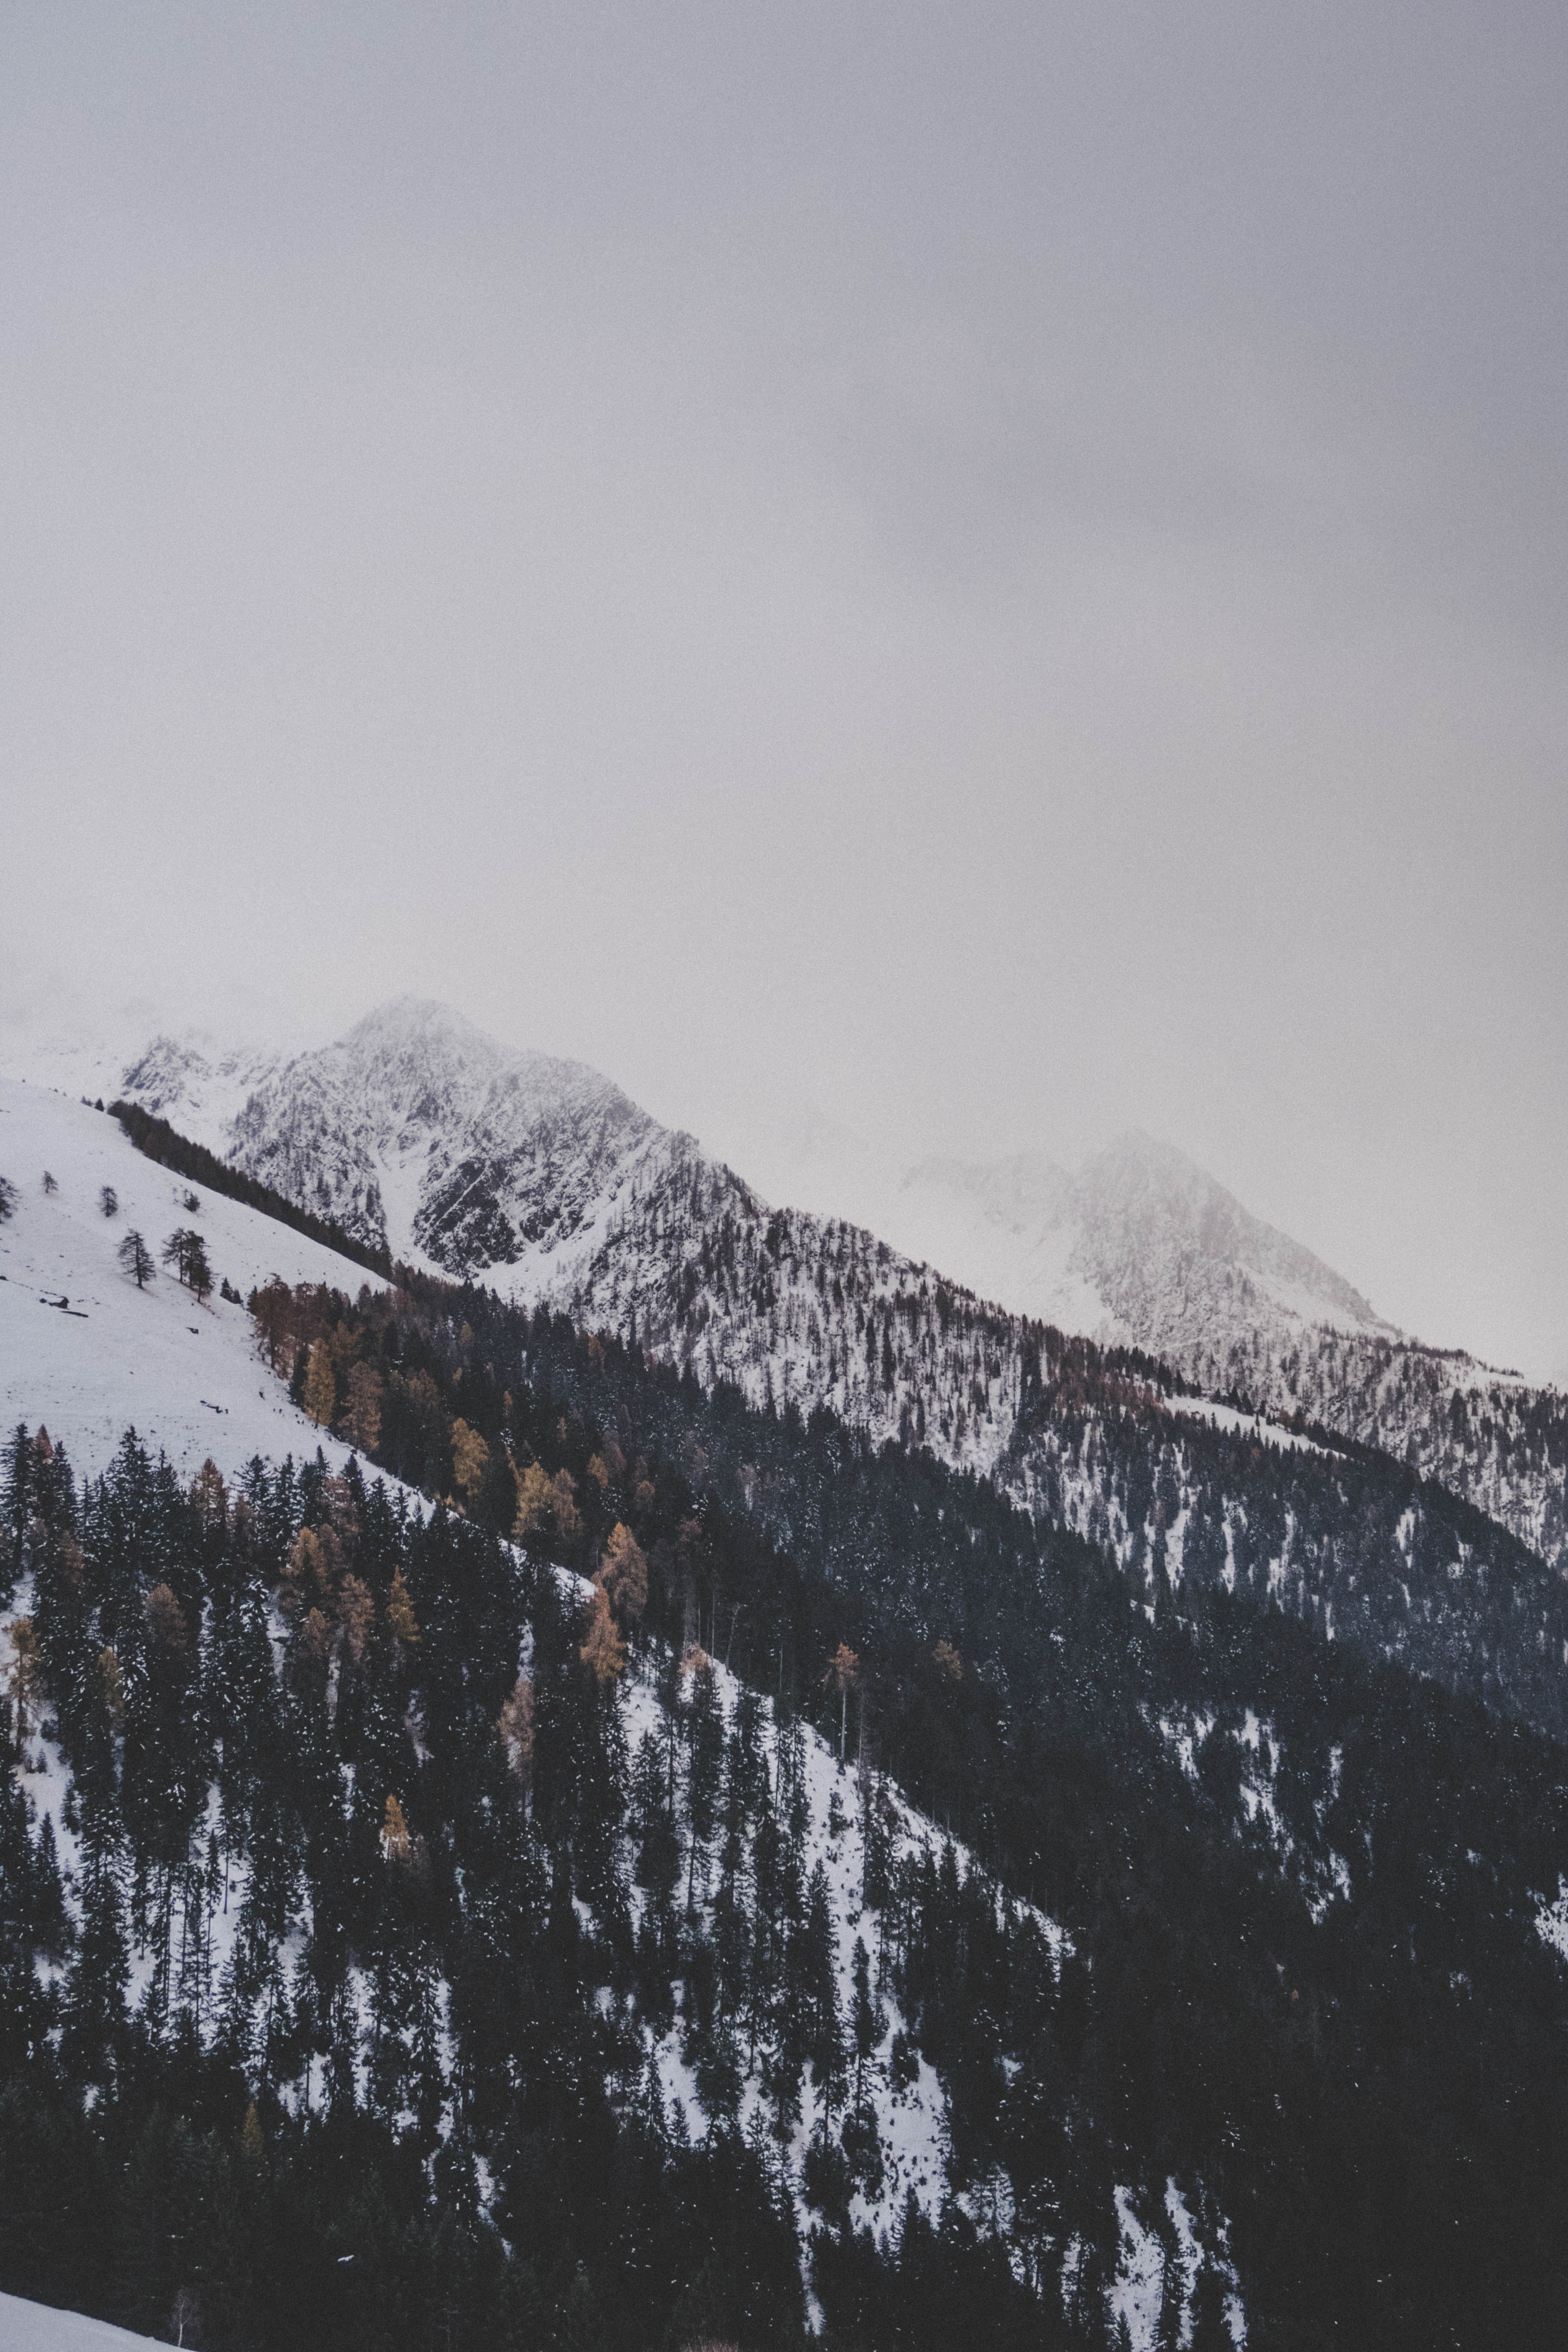 mountain covered by snow and trees